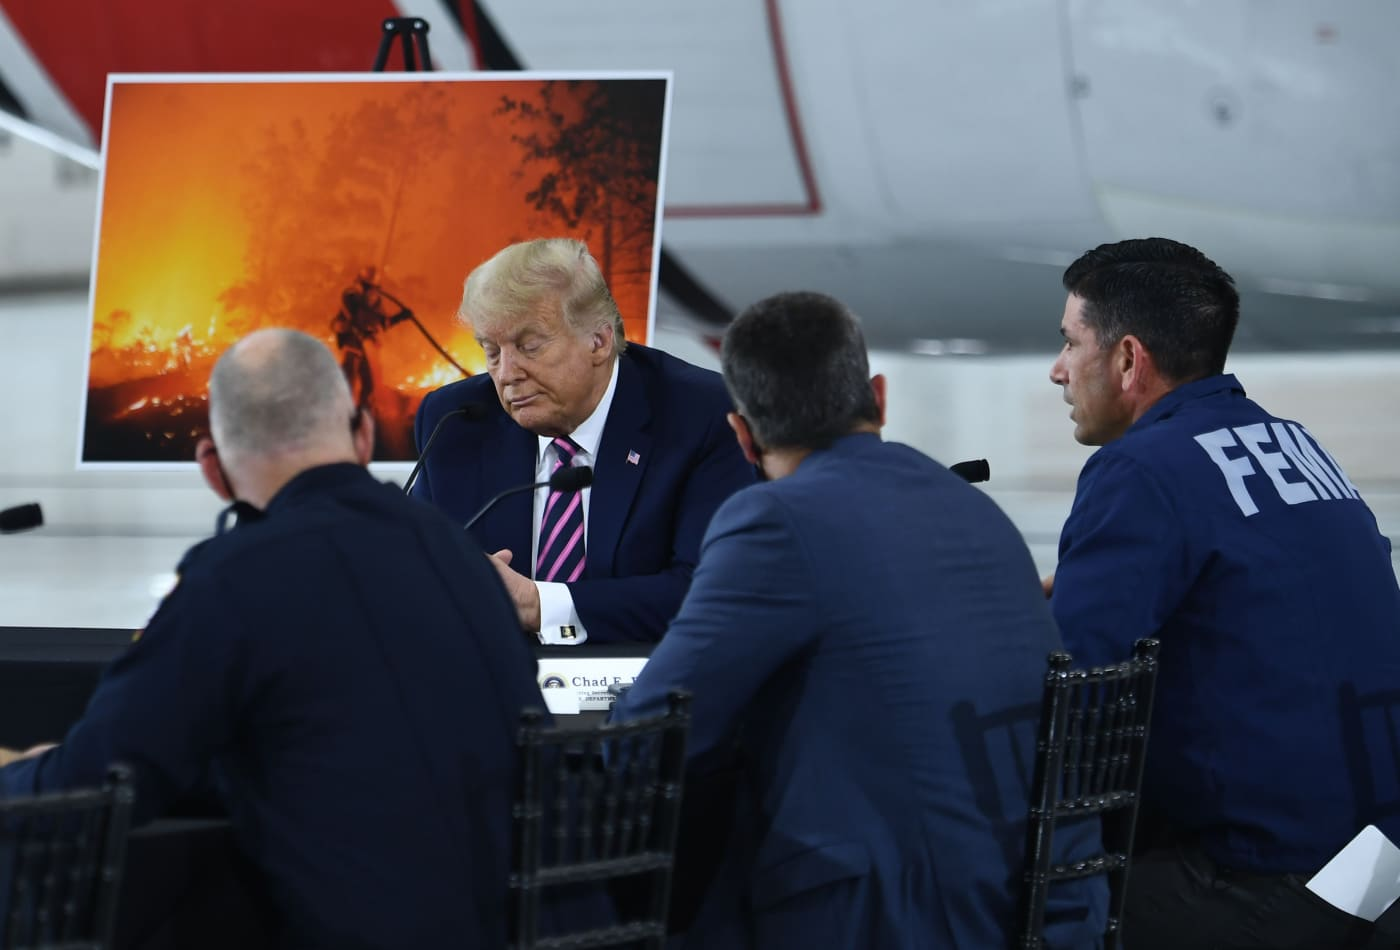 'I don't think science knows,' Trump responds when challenged on climate change at wildfire briefing